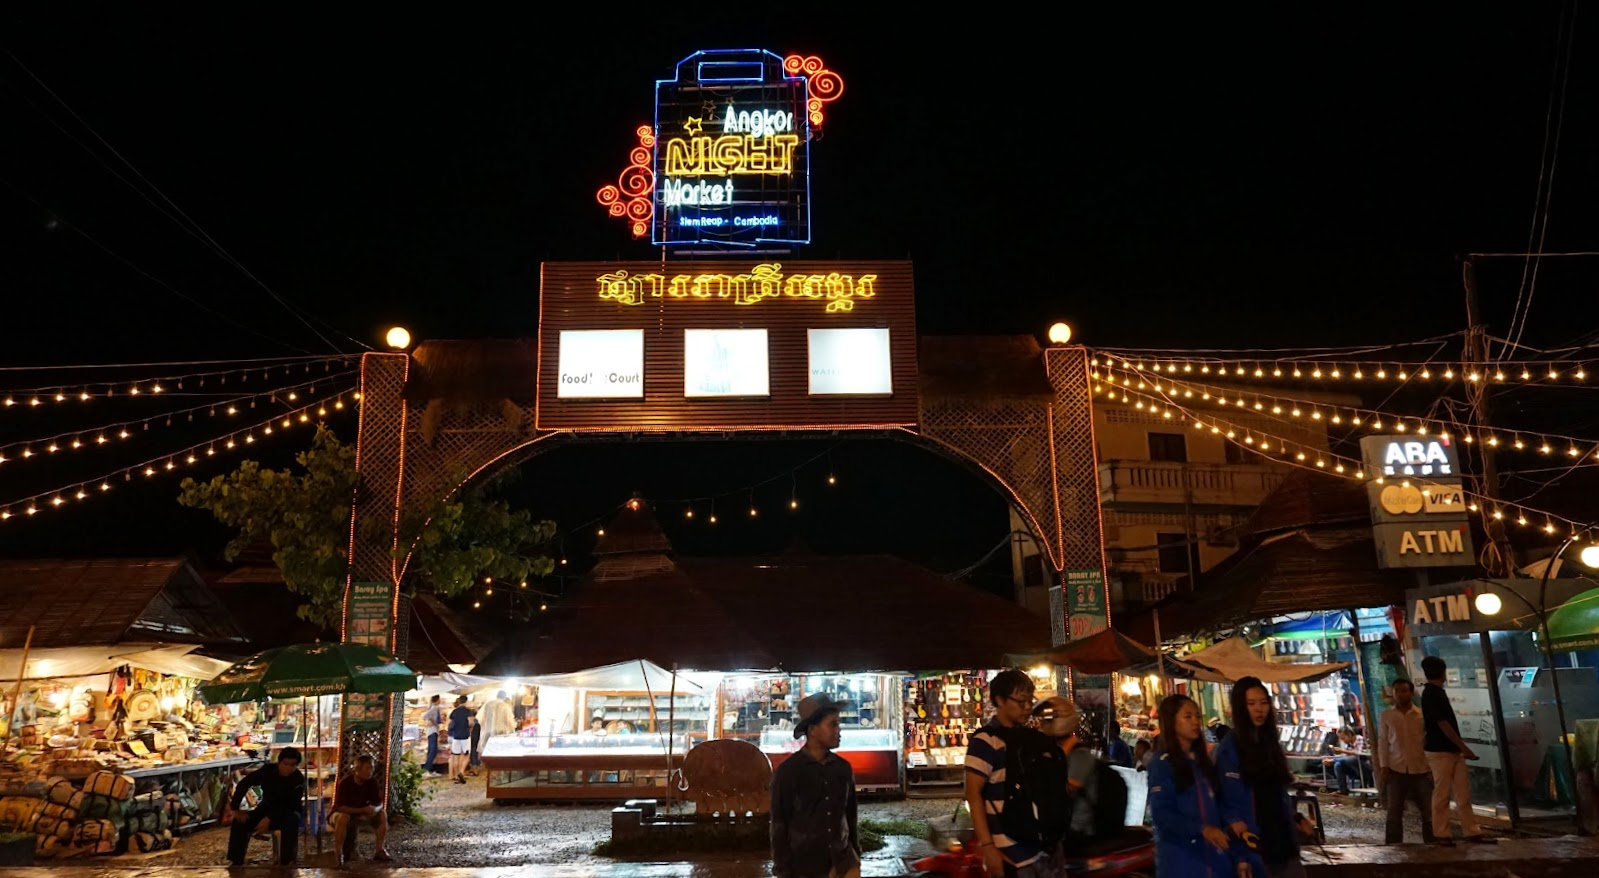 Angkor Night Market, a great place to shop for souvenirs in Siem Reap